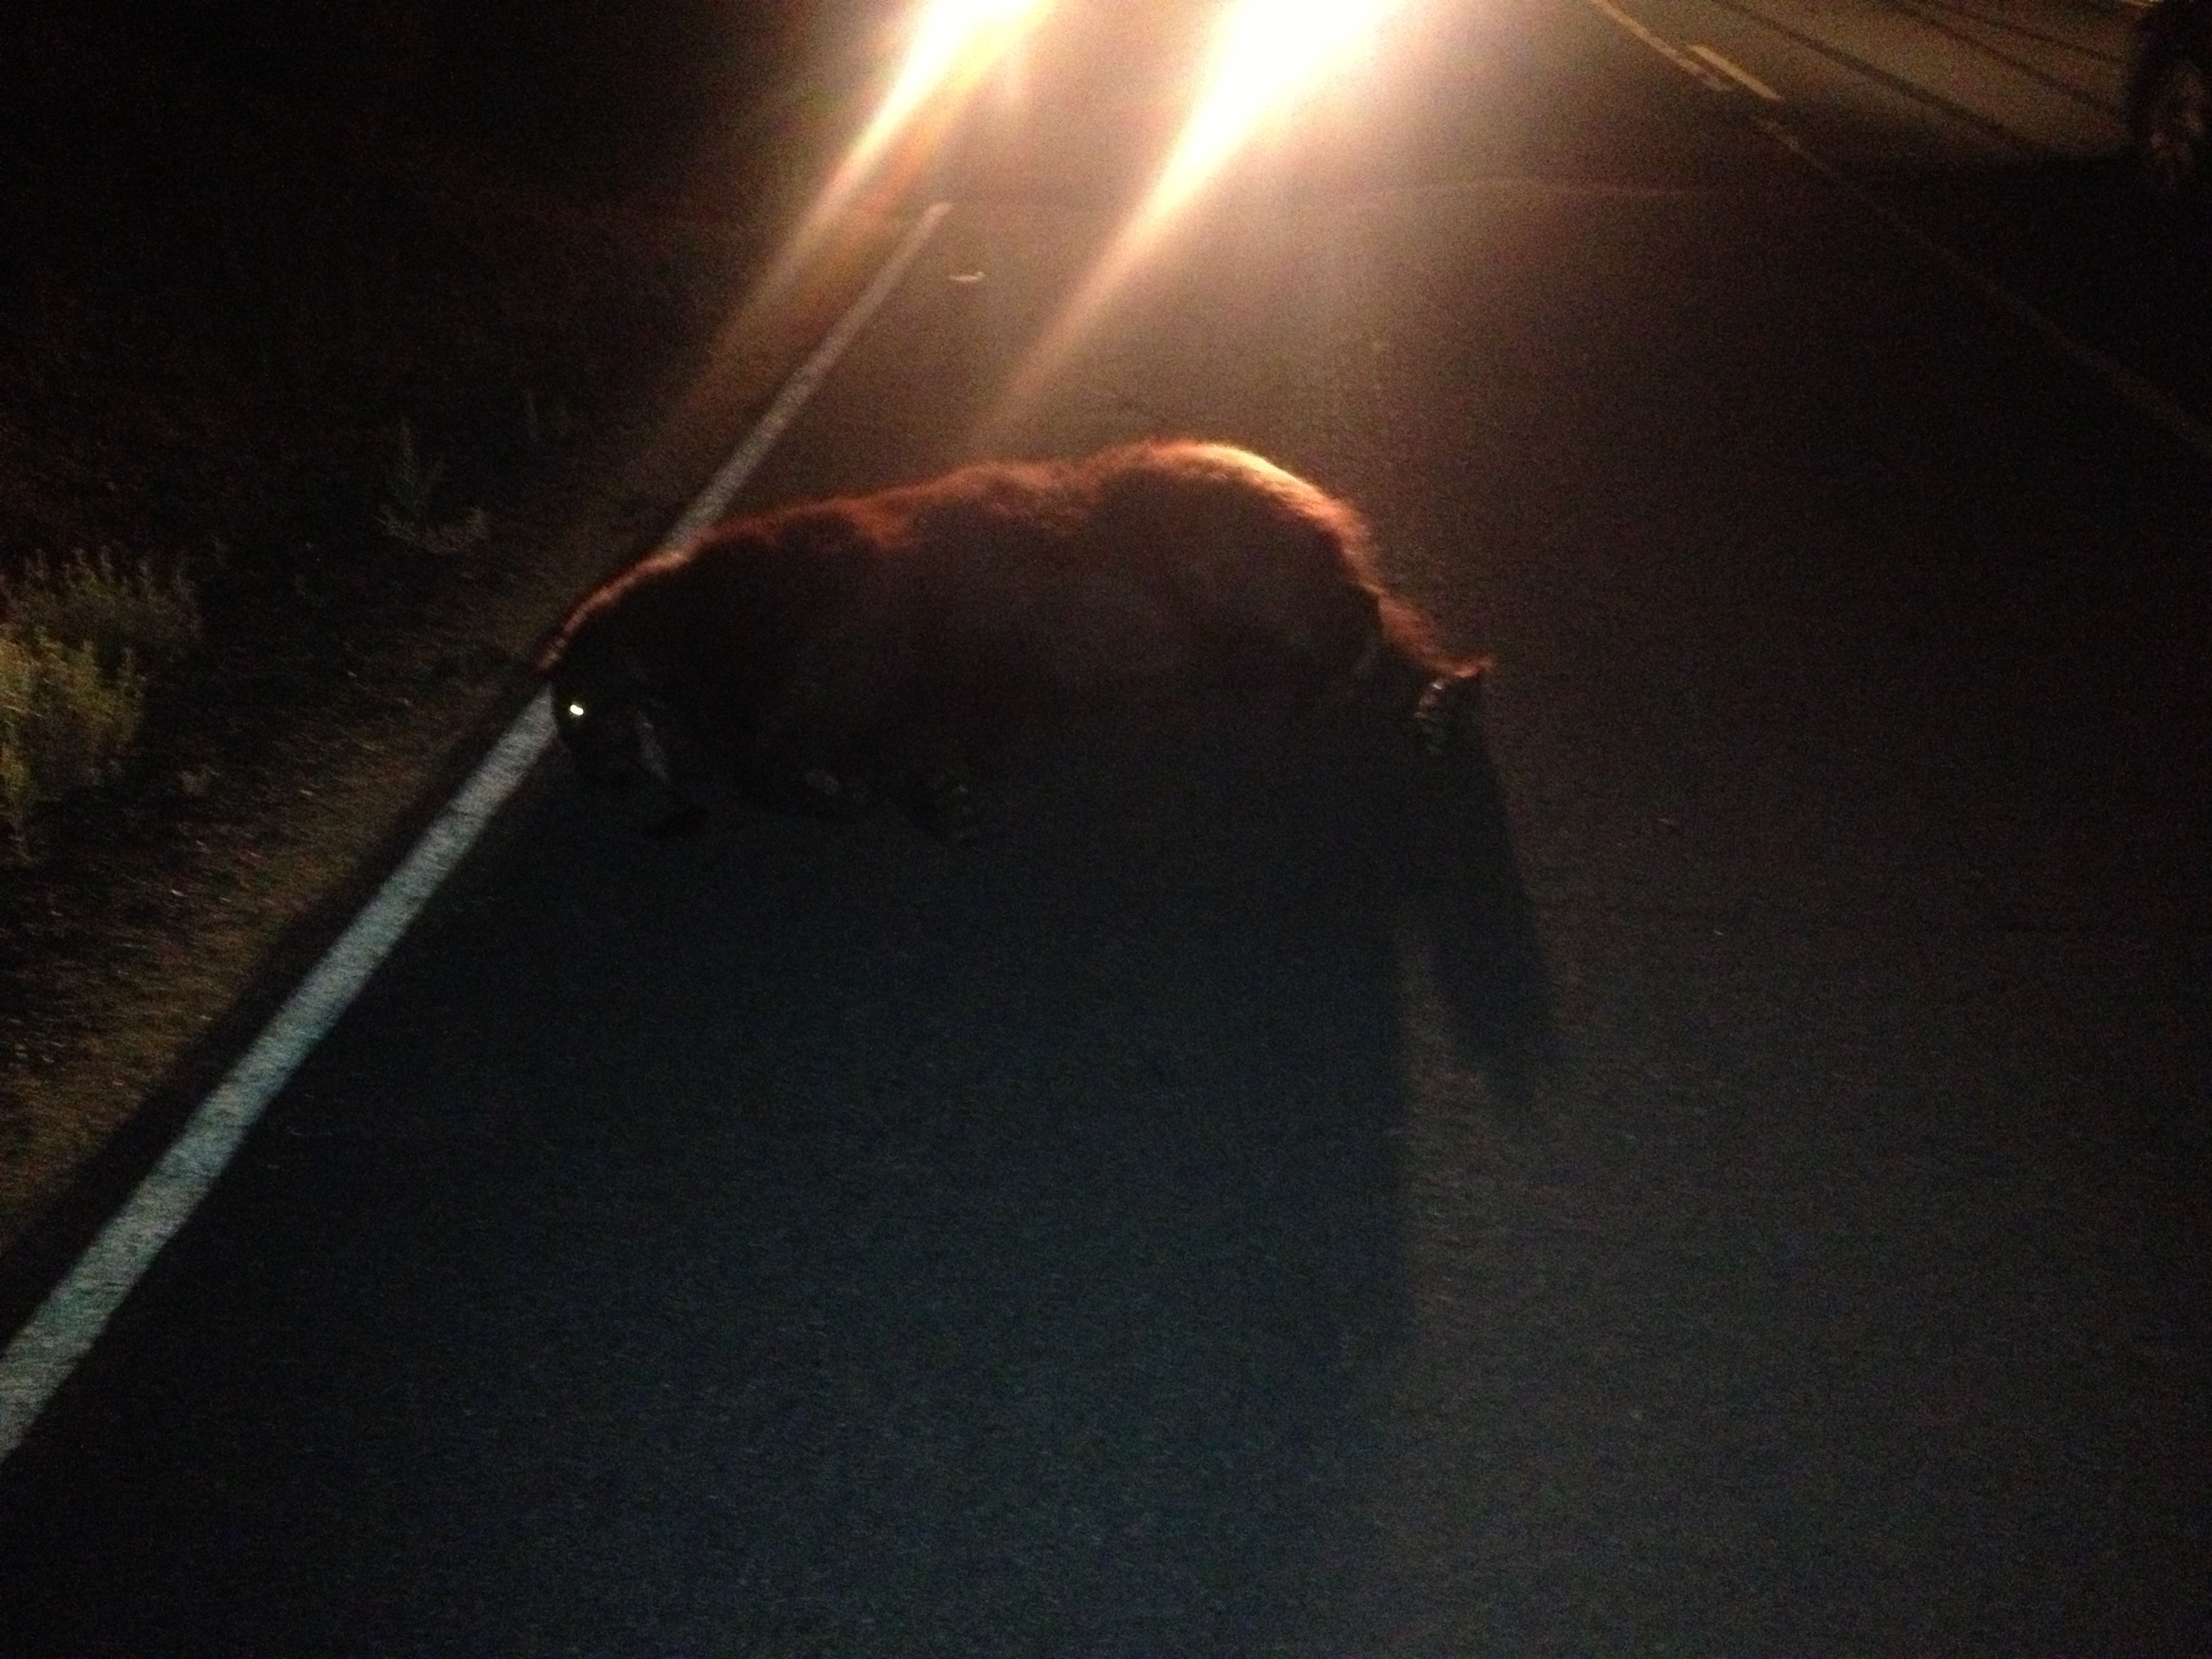 An eastbound Volvo hit a bear crossing Cuddy Valley Road on Friday, Aug. 9 about 9 p.m. The bear was killed, the car appeared to be wrecked. .[Finn Myggen photo]